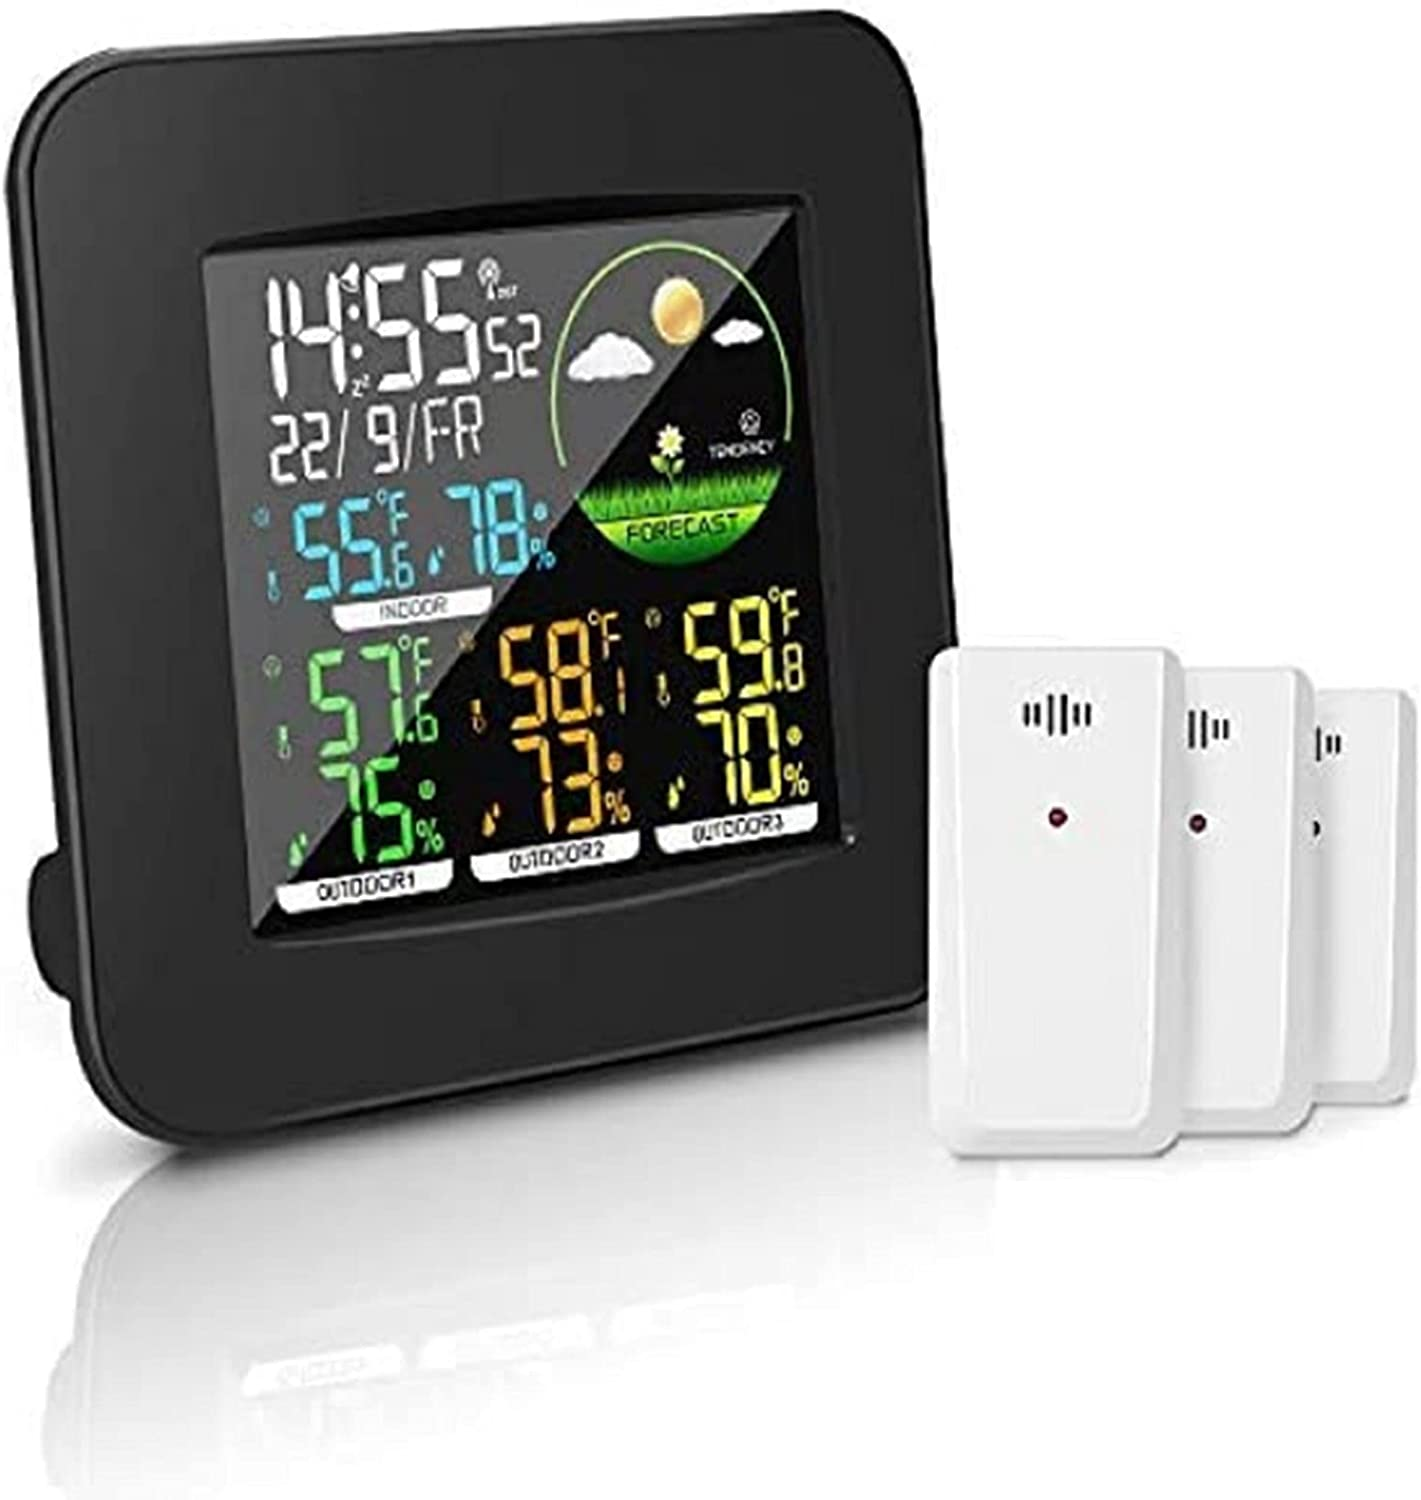 Geevon Weather Station Wireless Indoor Outdoor Thermometer Multiple Sensors, Digital Temperature Humidity Monitor, Color LCD Display, Atomic / Alarm Clock, 3-Level Backlight